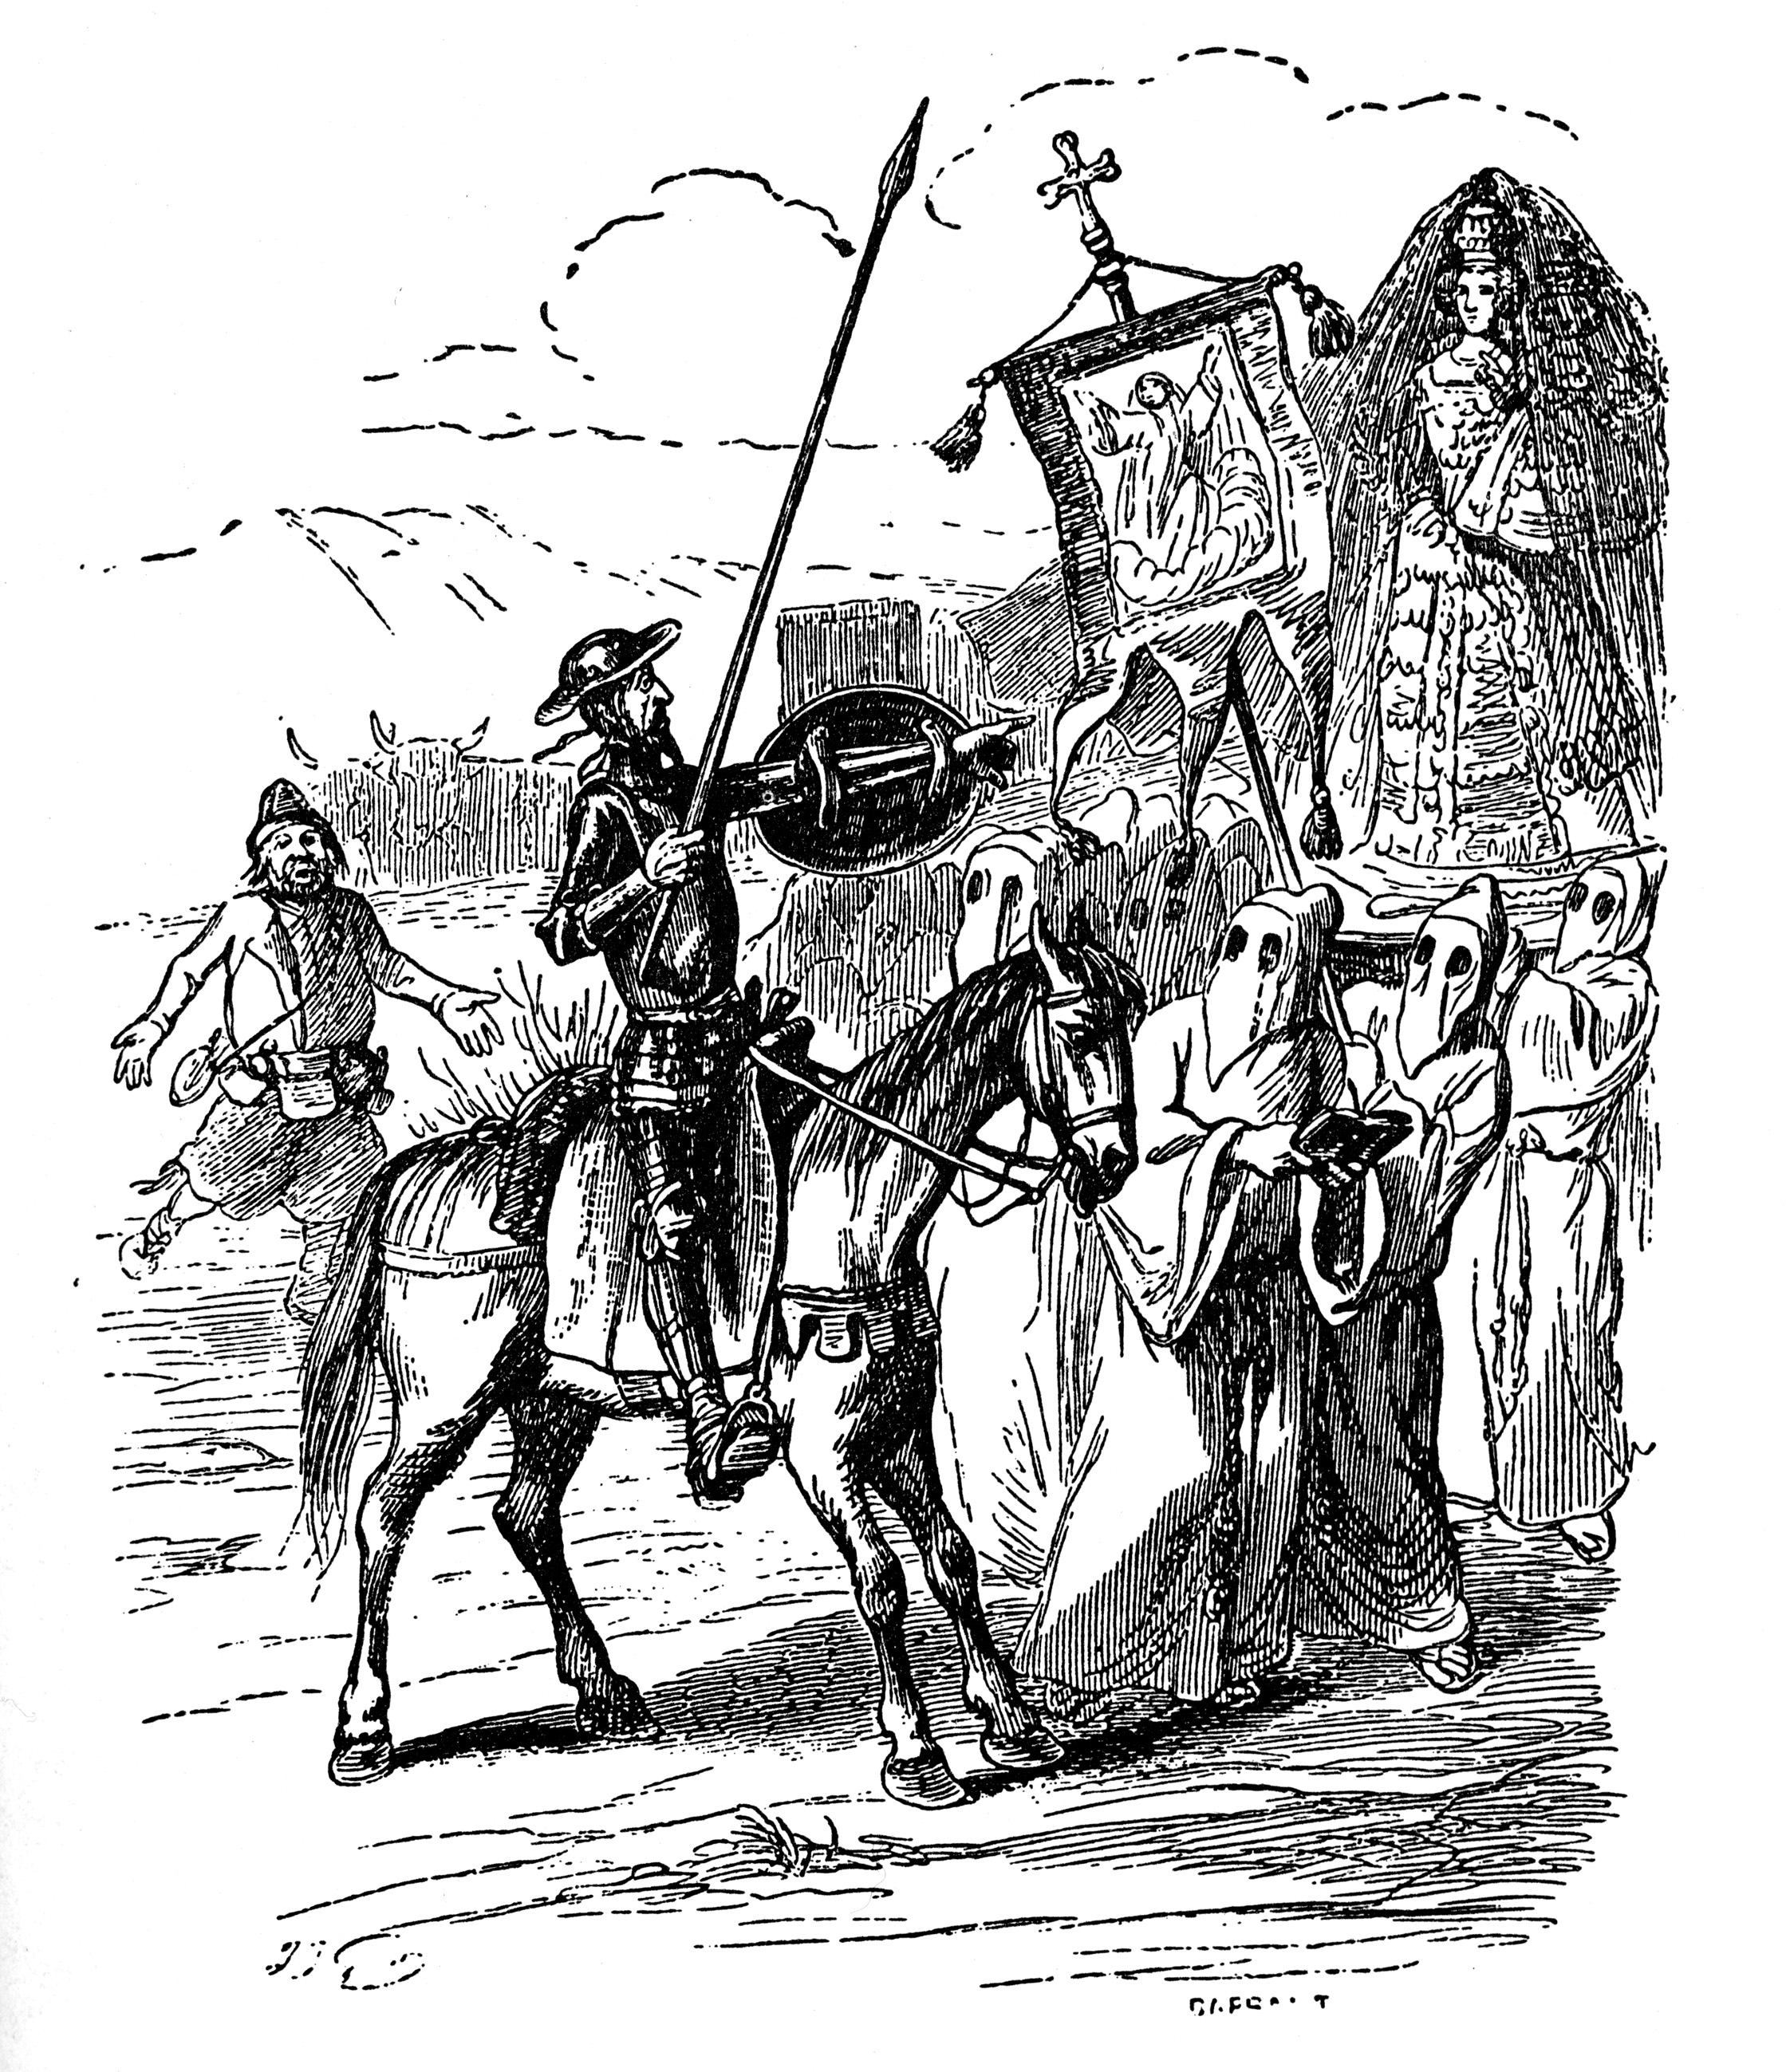 http://upload.wikimedia.org/wikipedia/commons/3/3a/Quijote-2.jpg